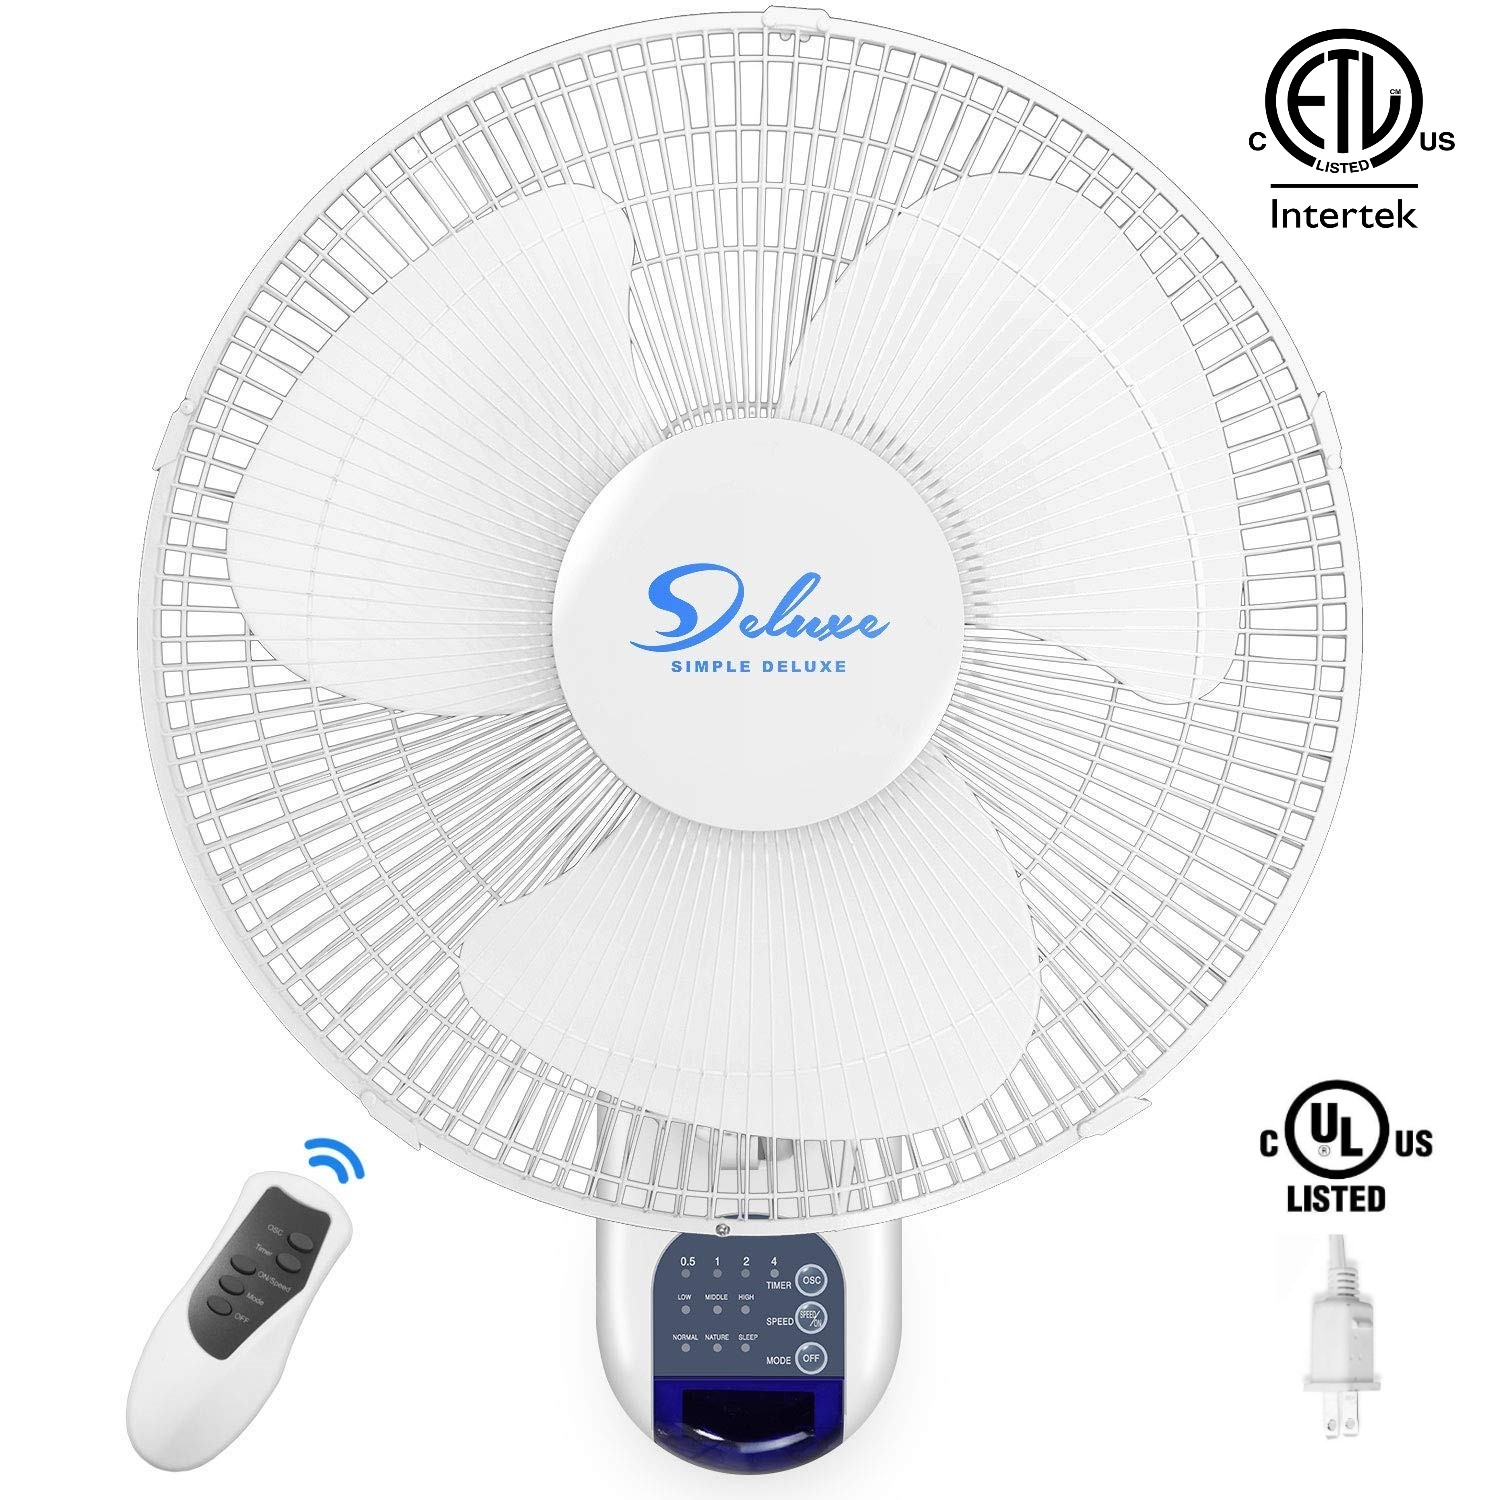 Simple Deluxe Quiet 16-Inch Digital Wall Mount Oscillating Fan with Remote